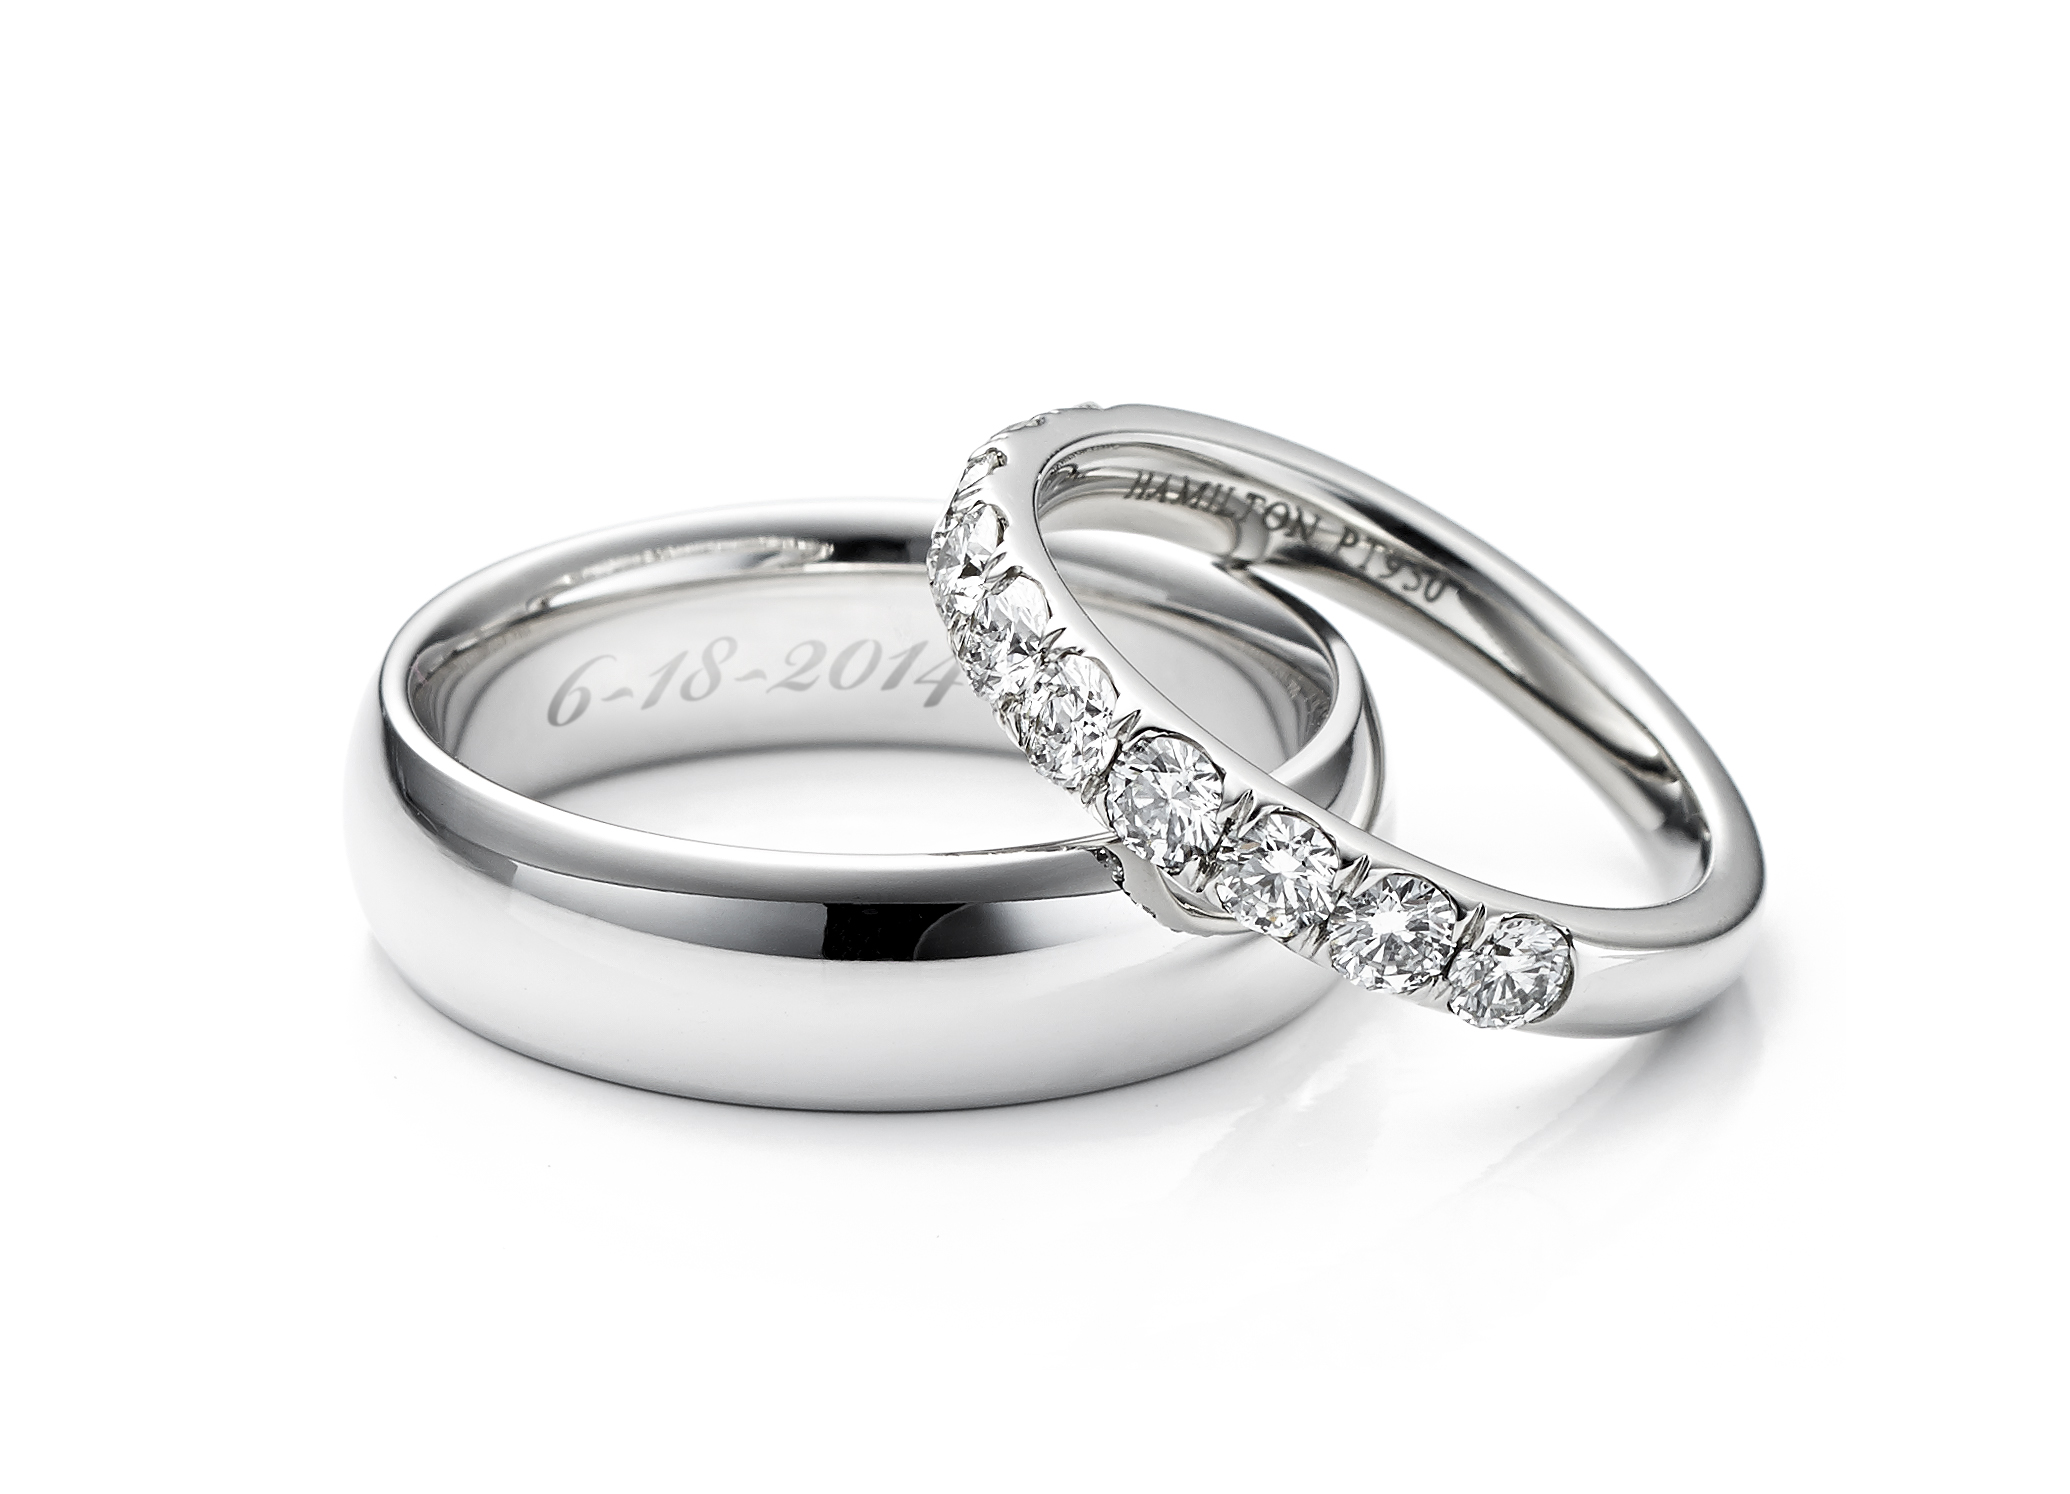 Wedding Band Or Engagement Ring, What's The Difference